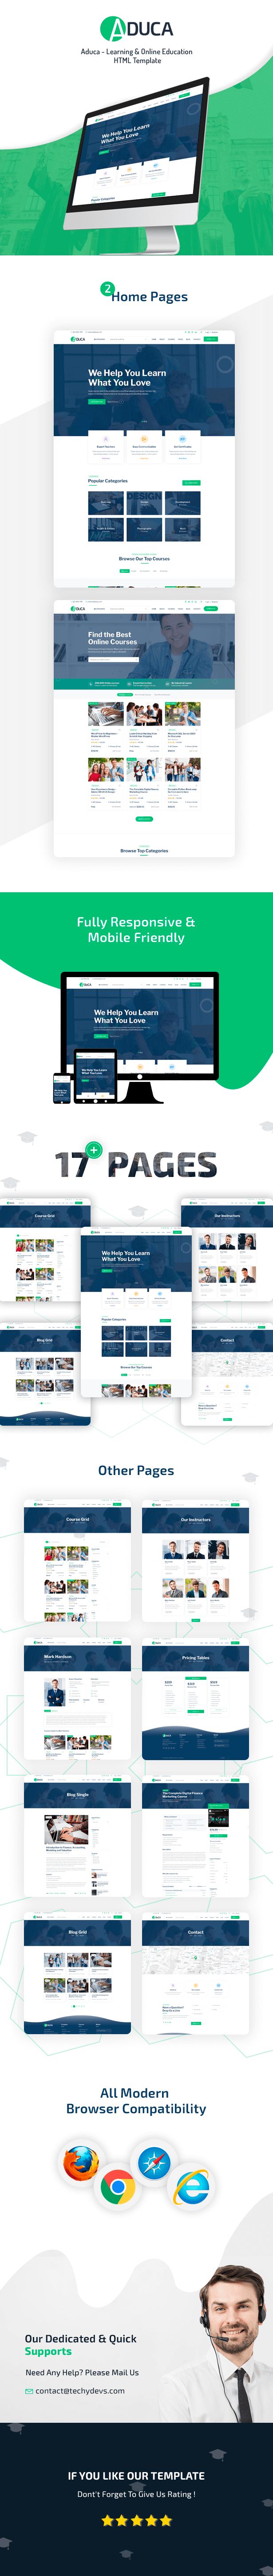 Aduca - Online Education & LMS HTML5 Template